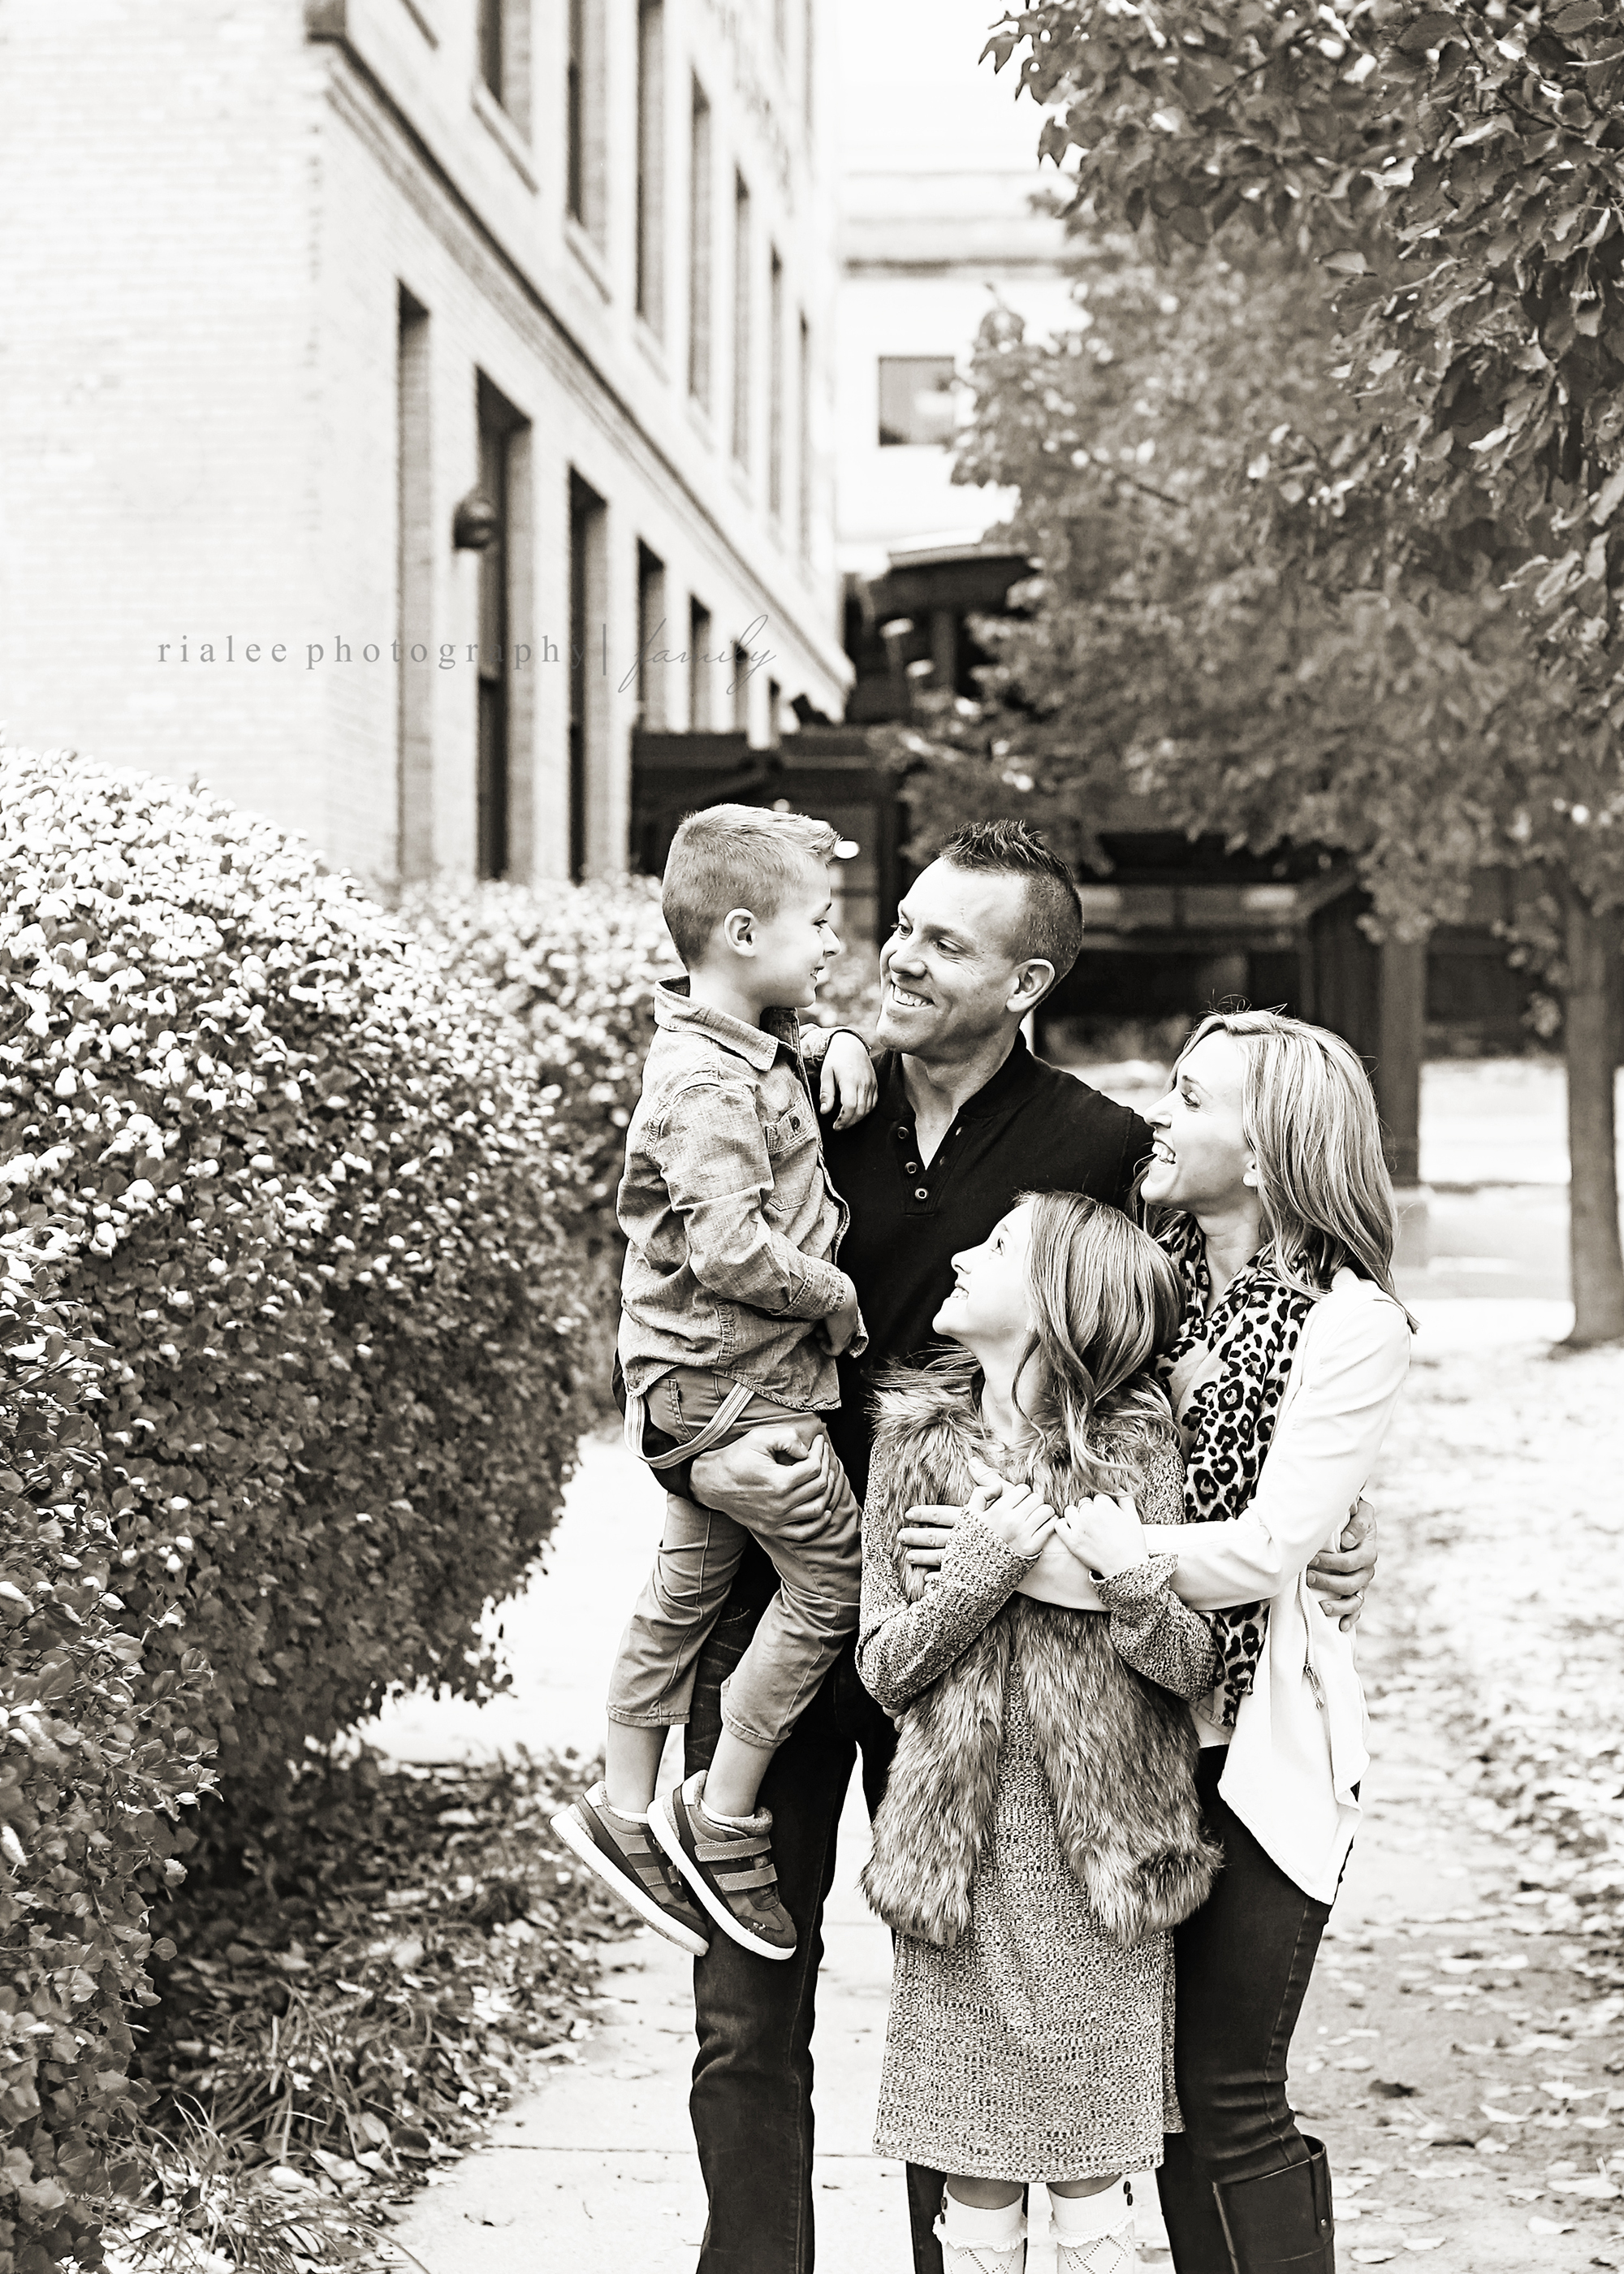 downtownfargofamilyphotographer.jpg